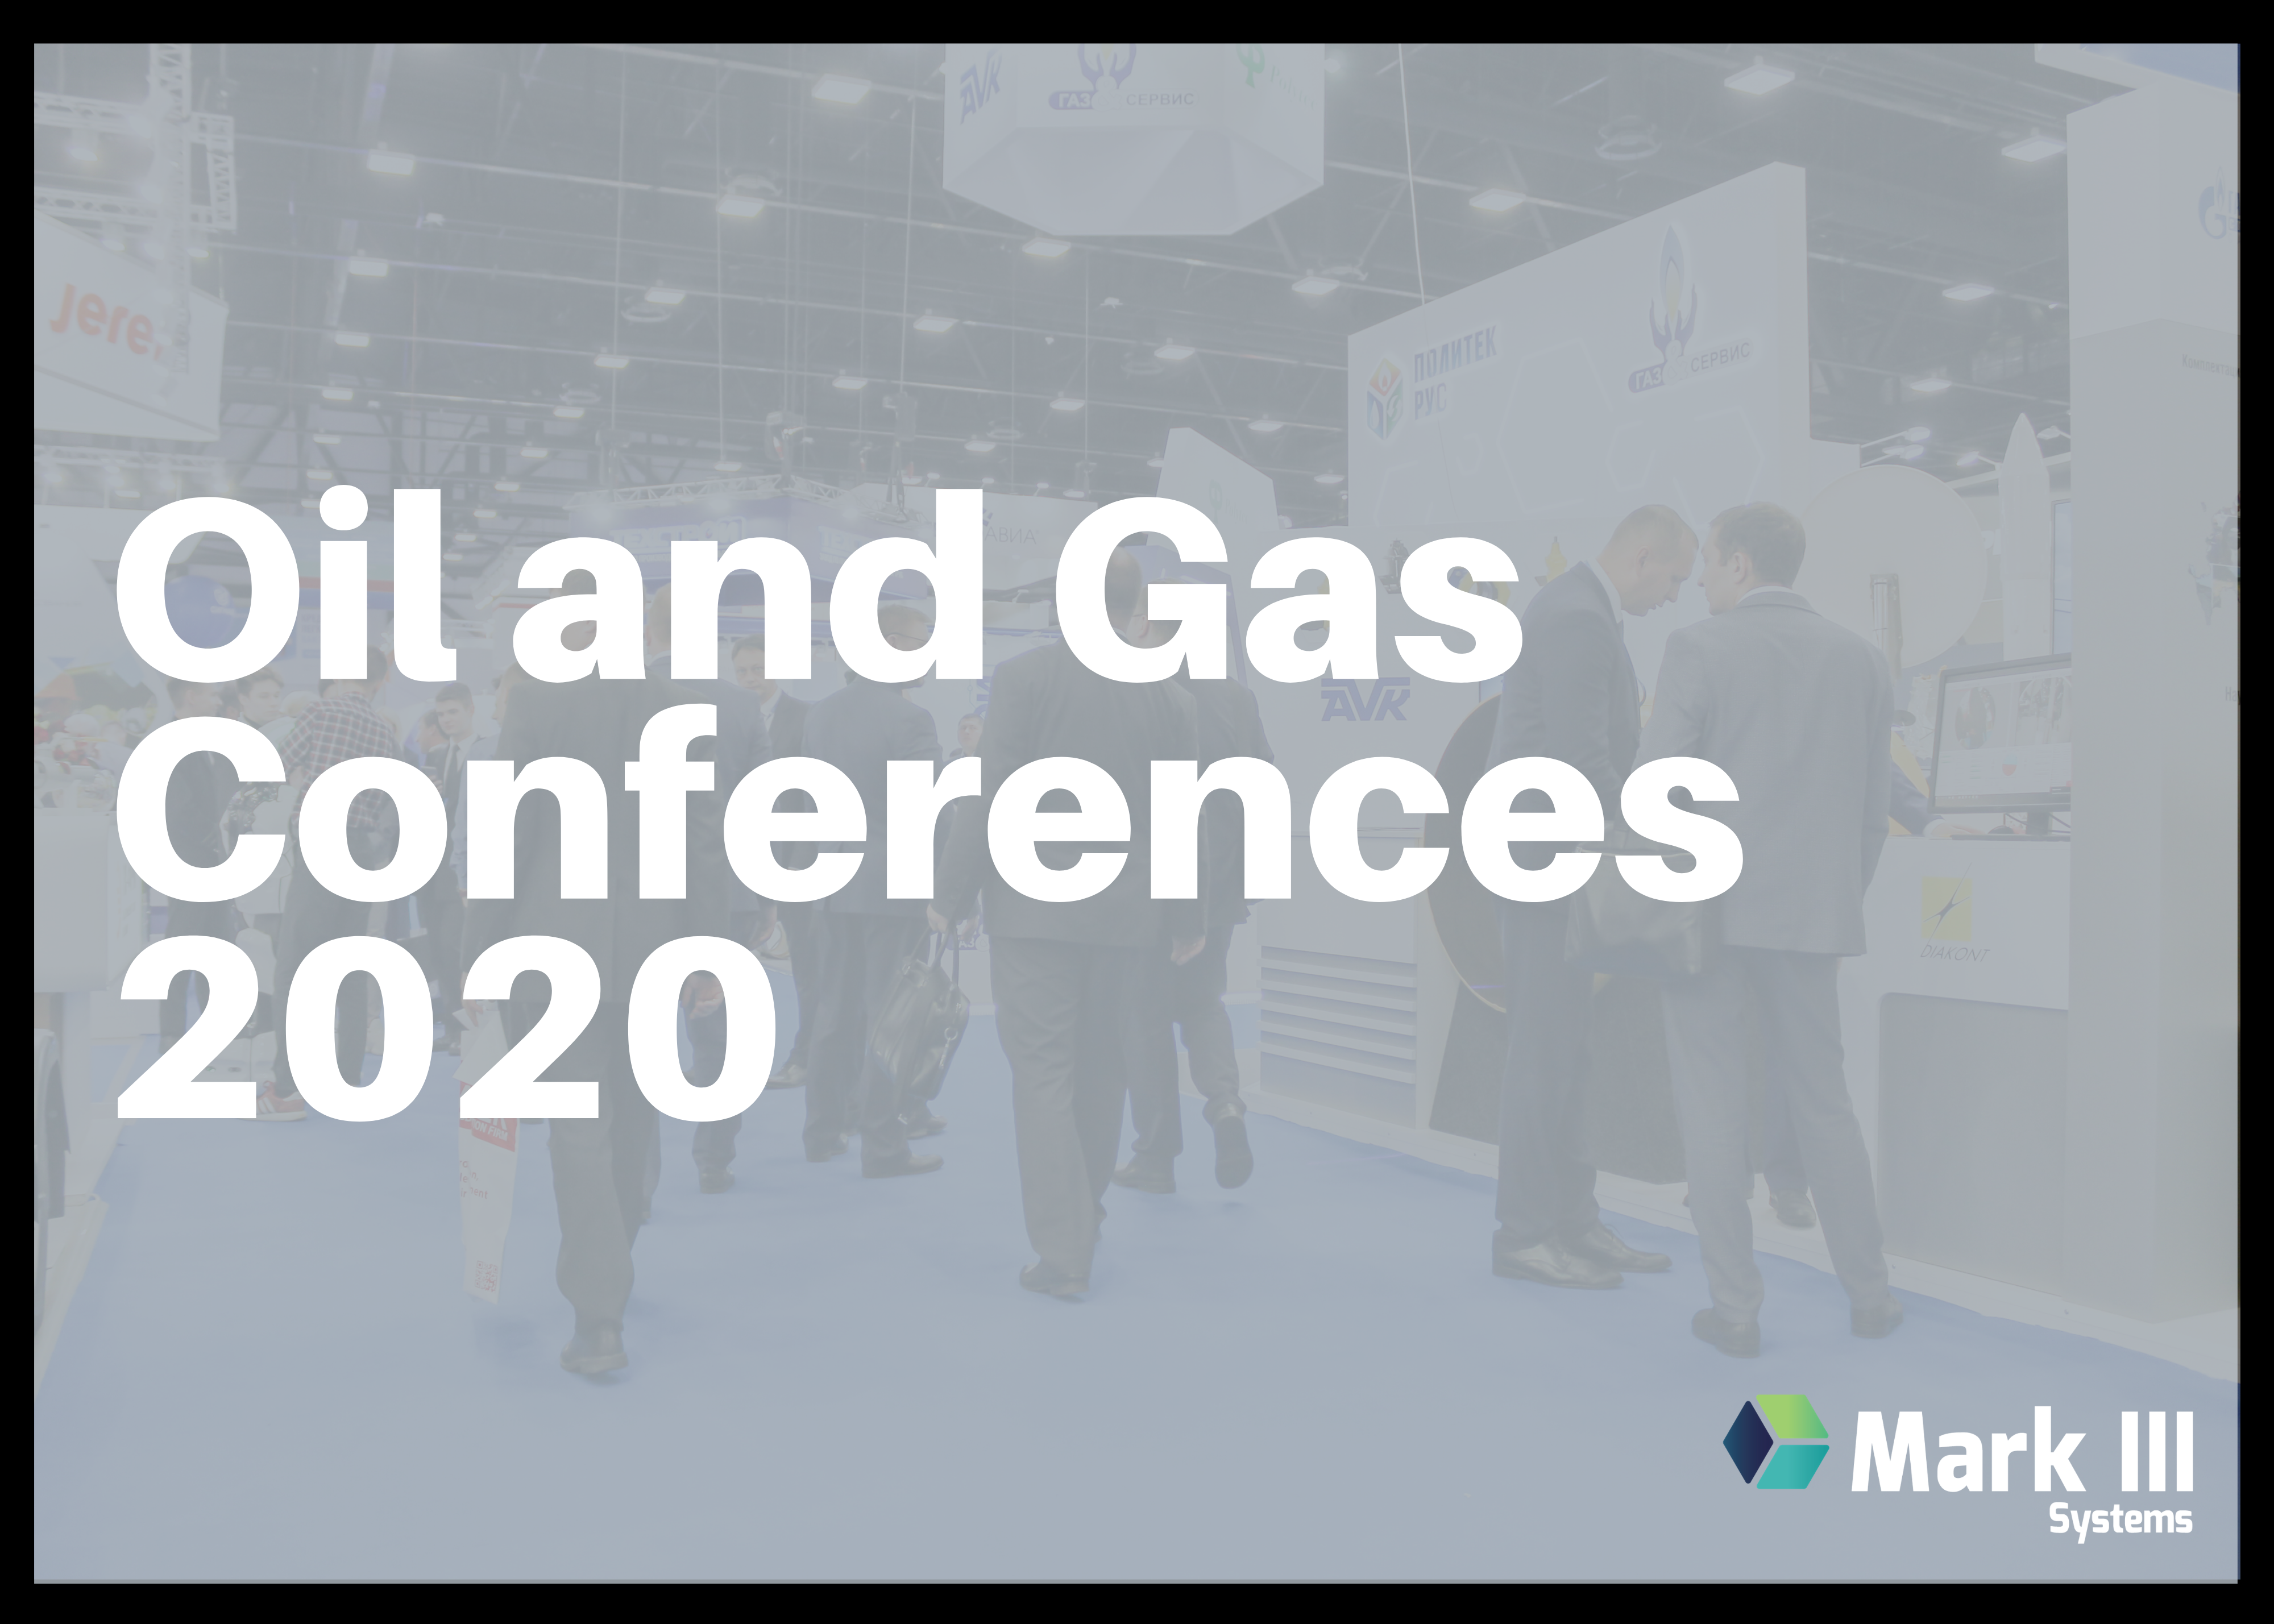 Oil and Gas Conferences to Attend in 2020